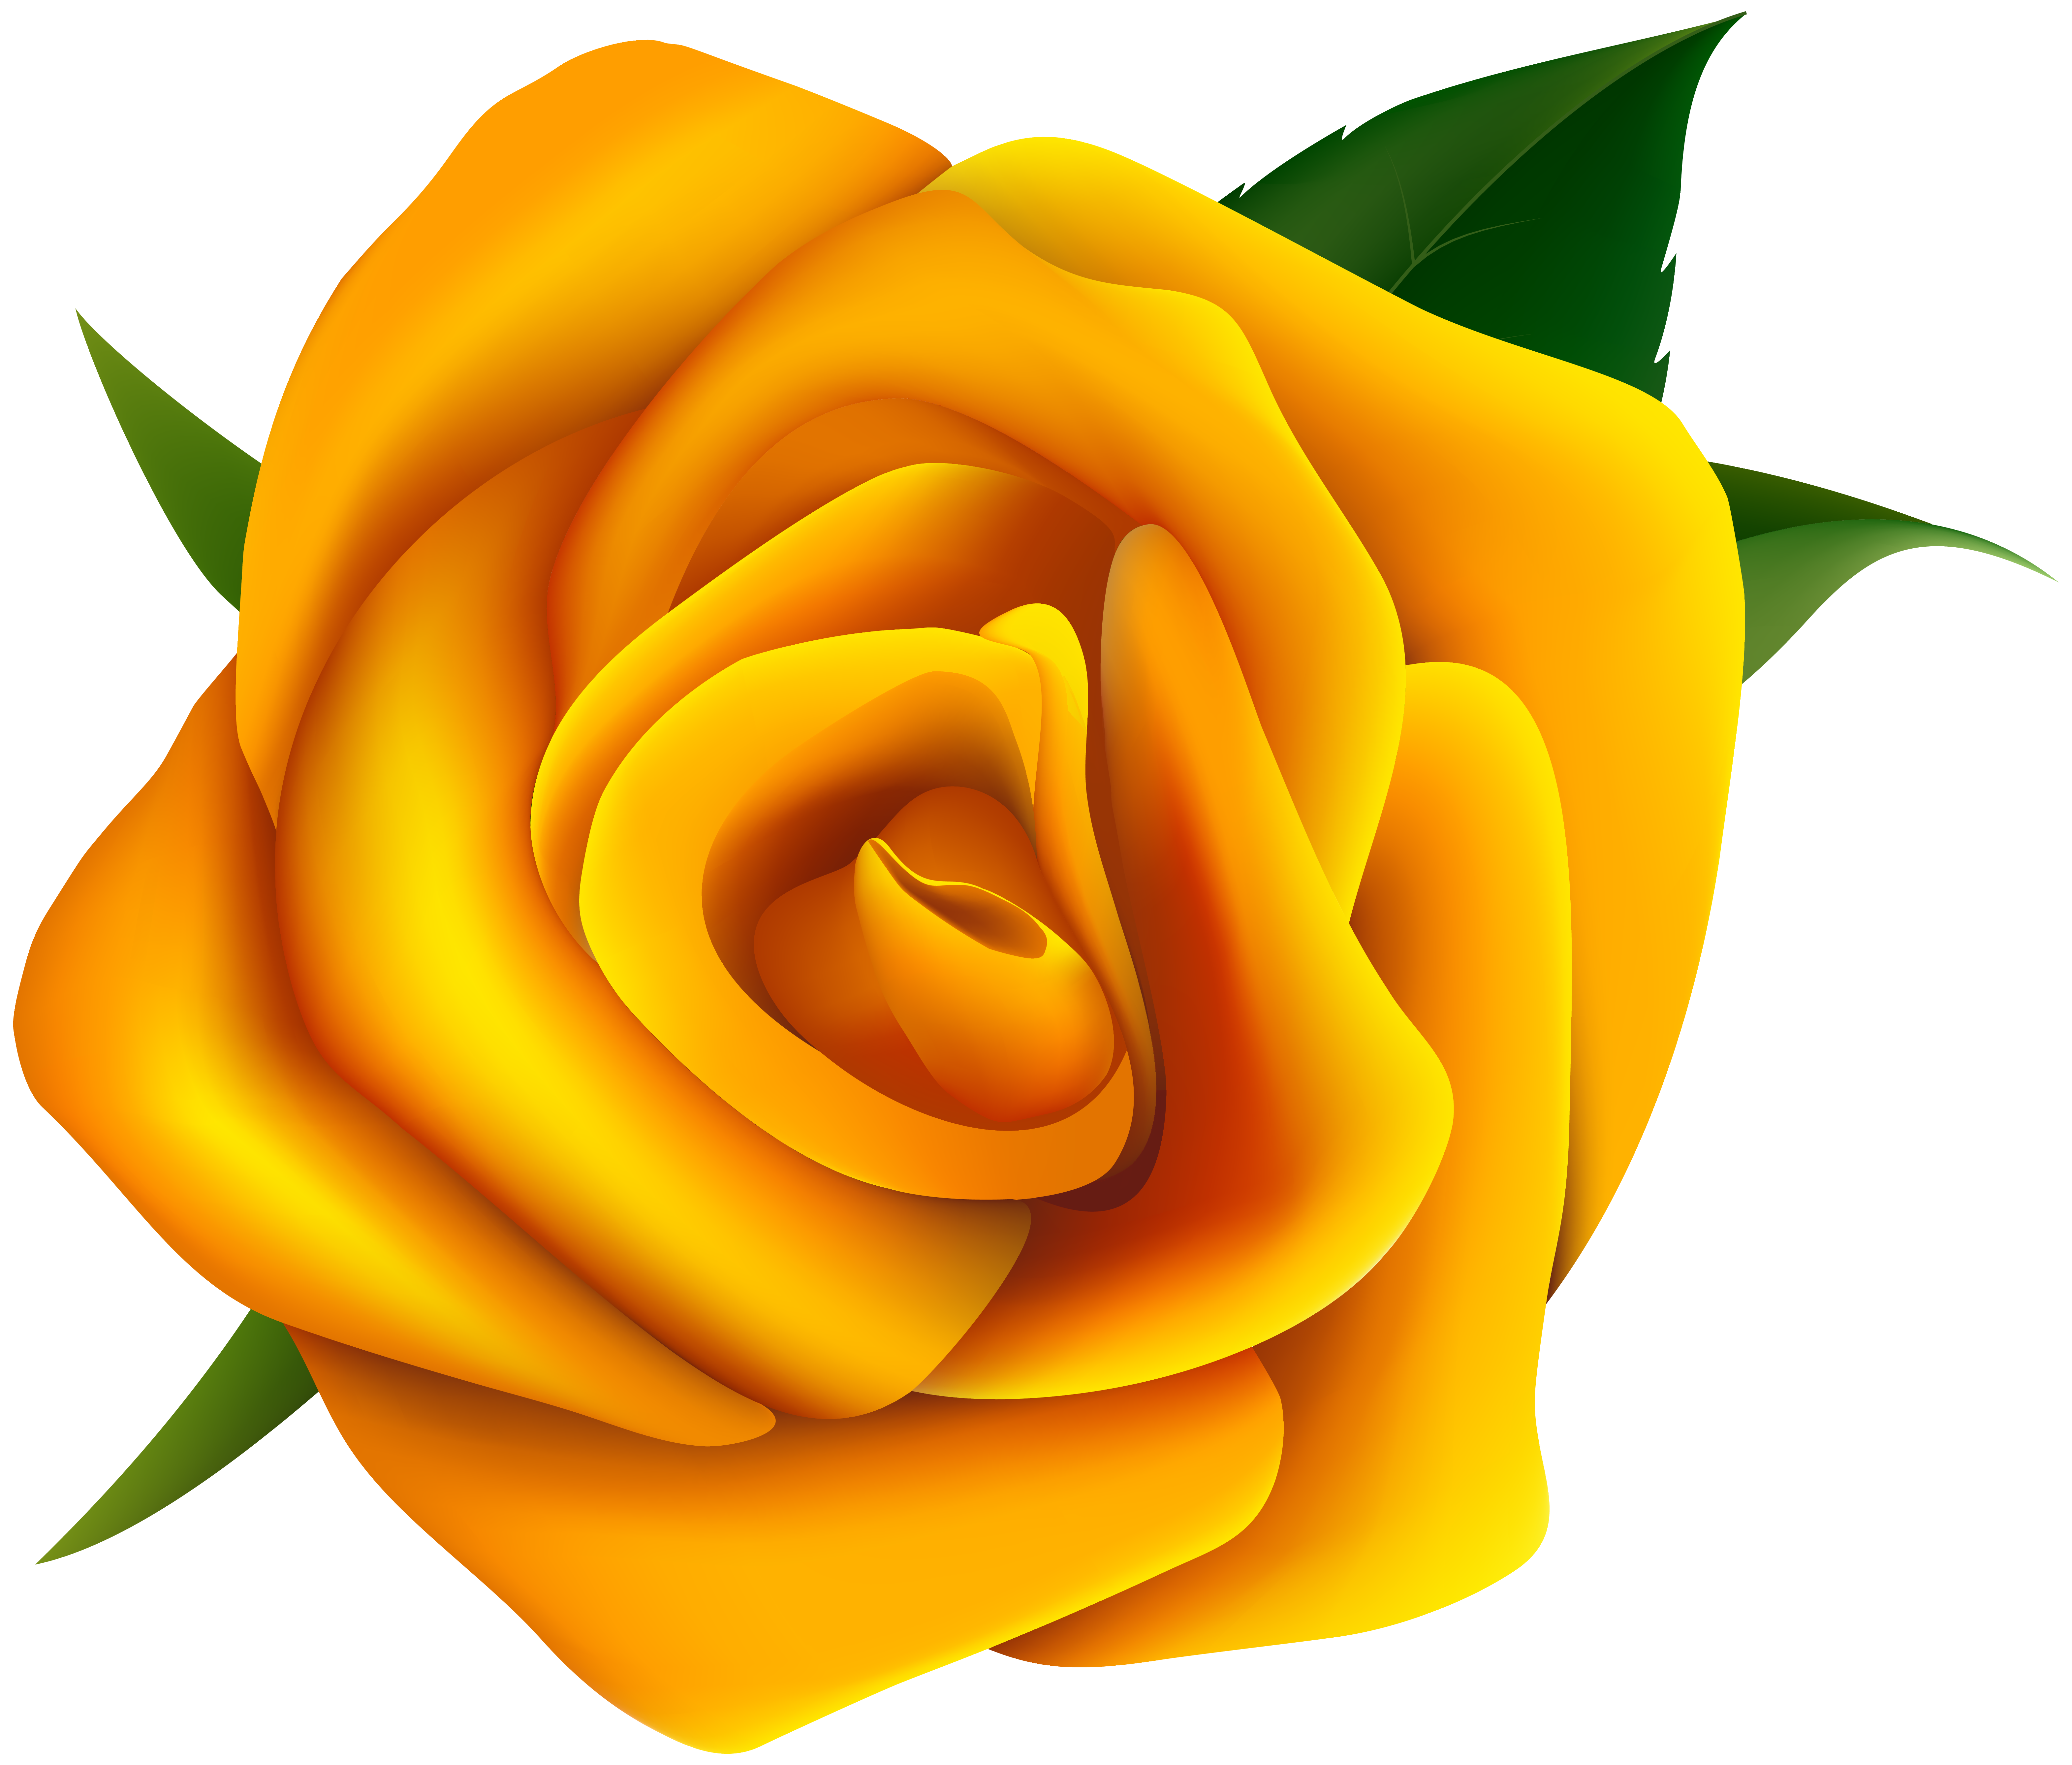 Yellow Flower clipart png format Clipart Yellow Rose Rose clipart